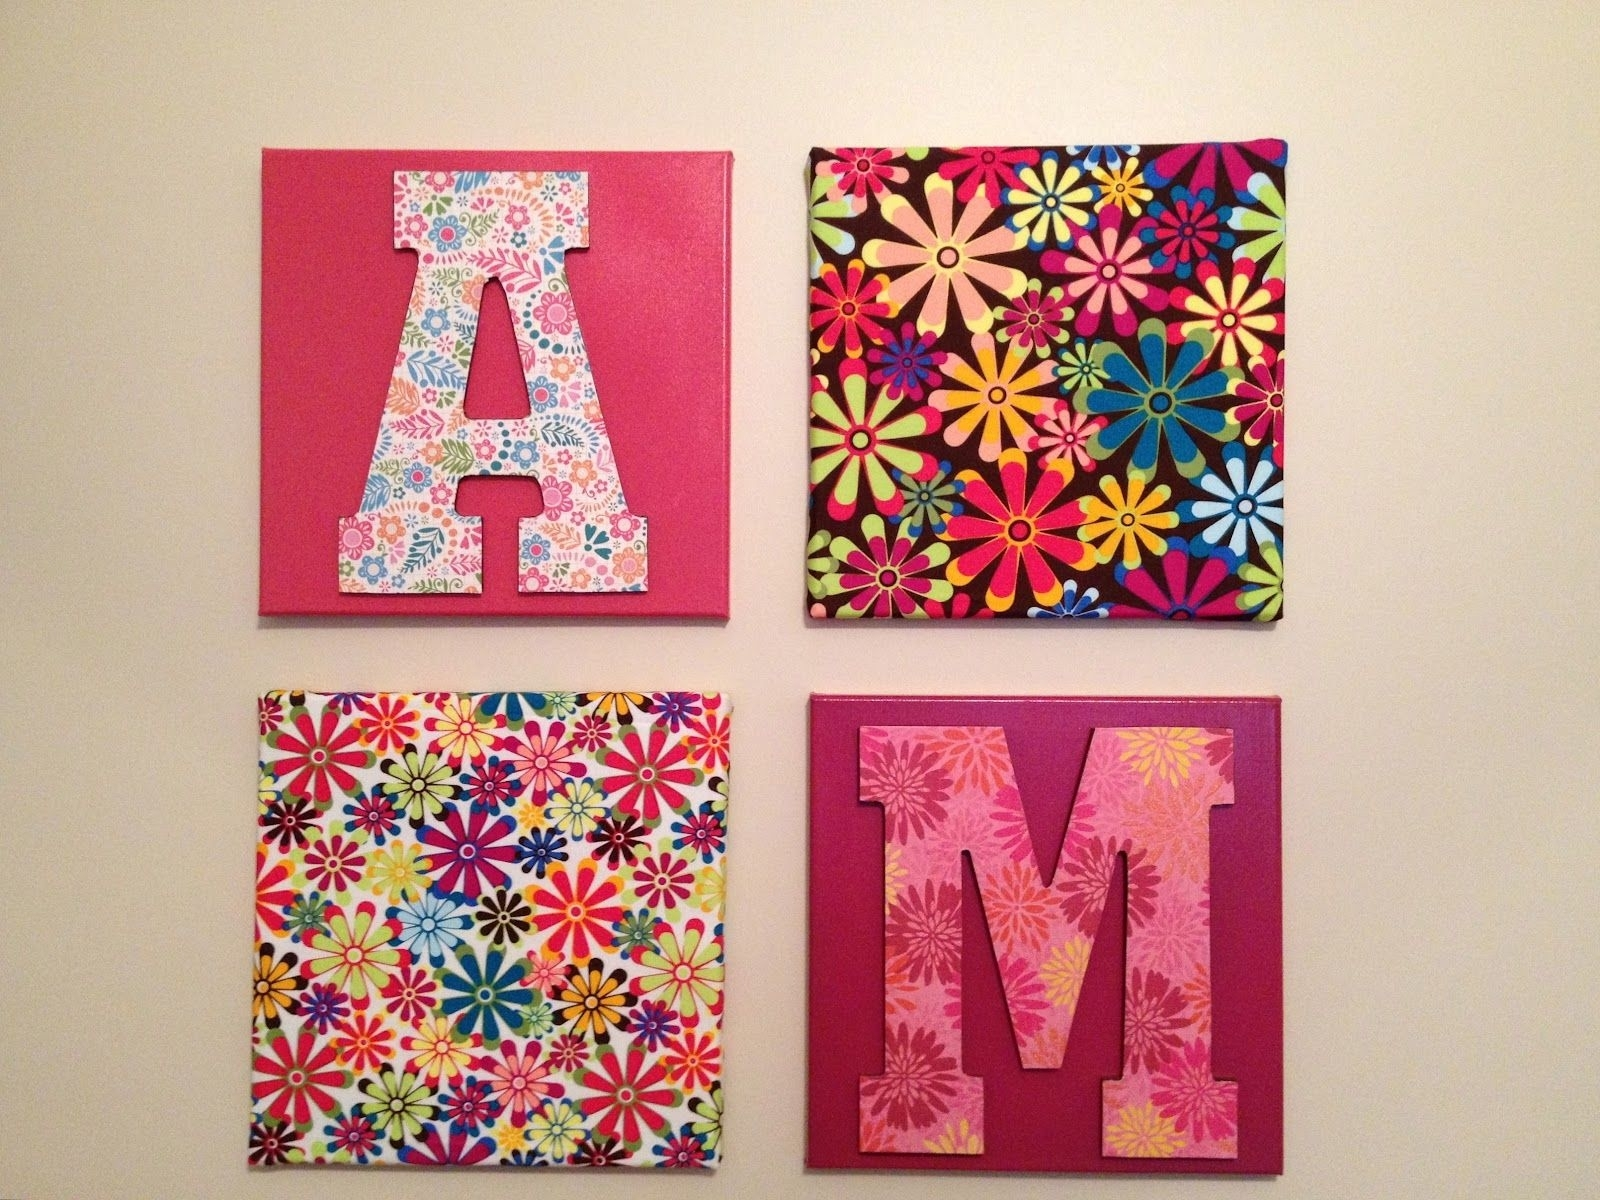 Craft Ideas For Girls | Living Unbound: Diy Easy Wall Hanging Throughout 2018 Mod Podge Fabric Wall Art (Gallery 9 of 15)